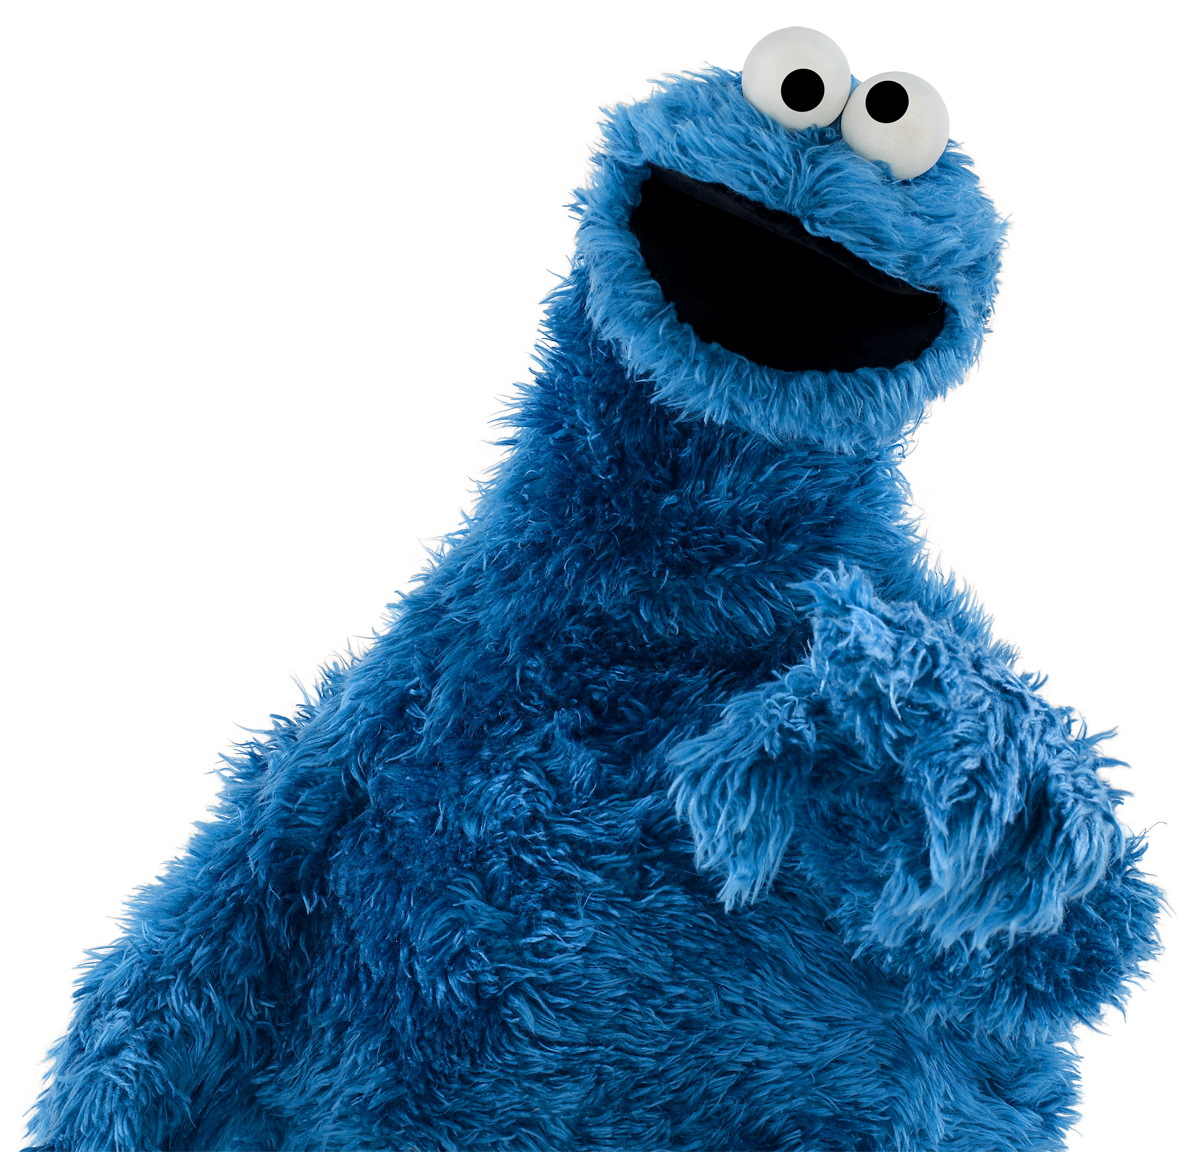 Weekly Muppet Wednesdays: Cookie Monster | The Muppet Mindset